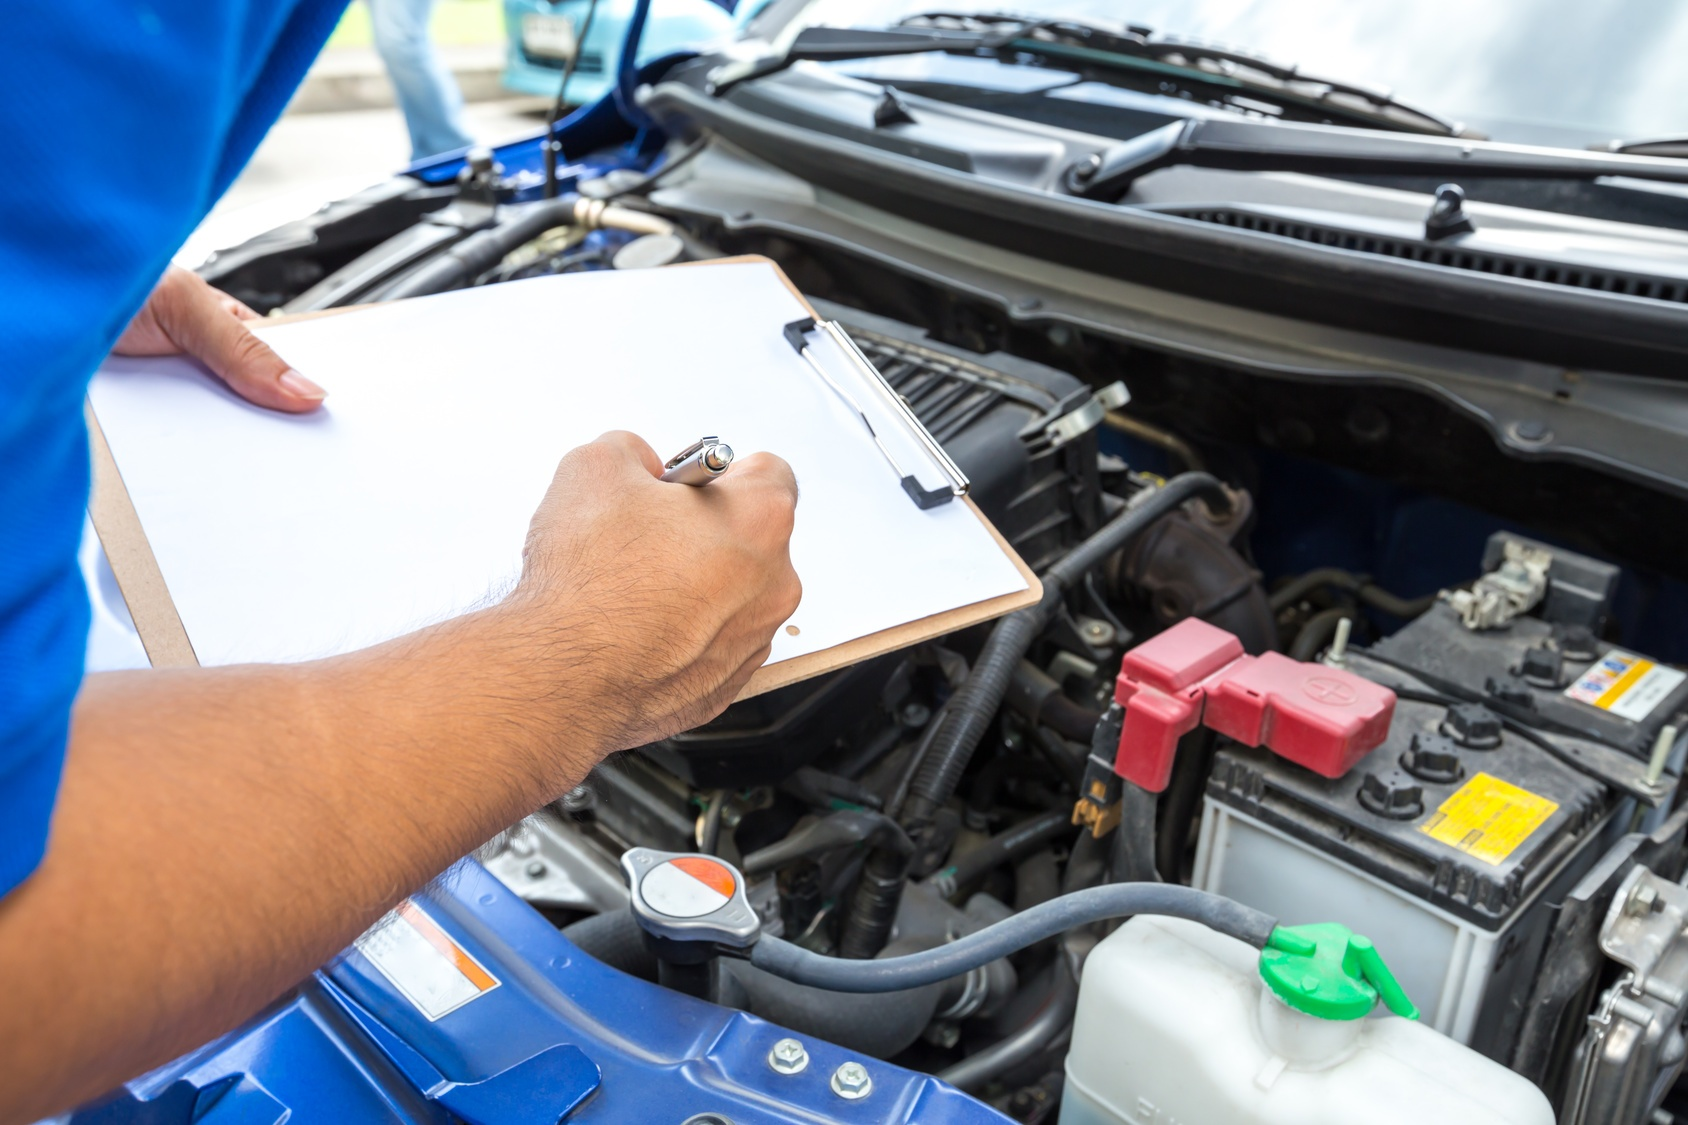 Commercial vehicle safety inspection guidance for Nearest motor vehicle inspection station